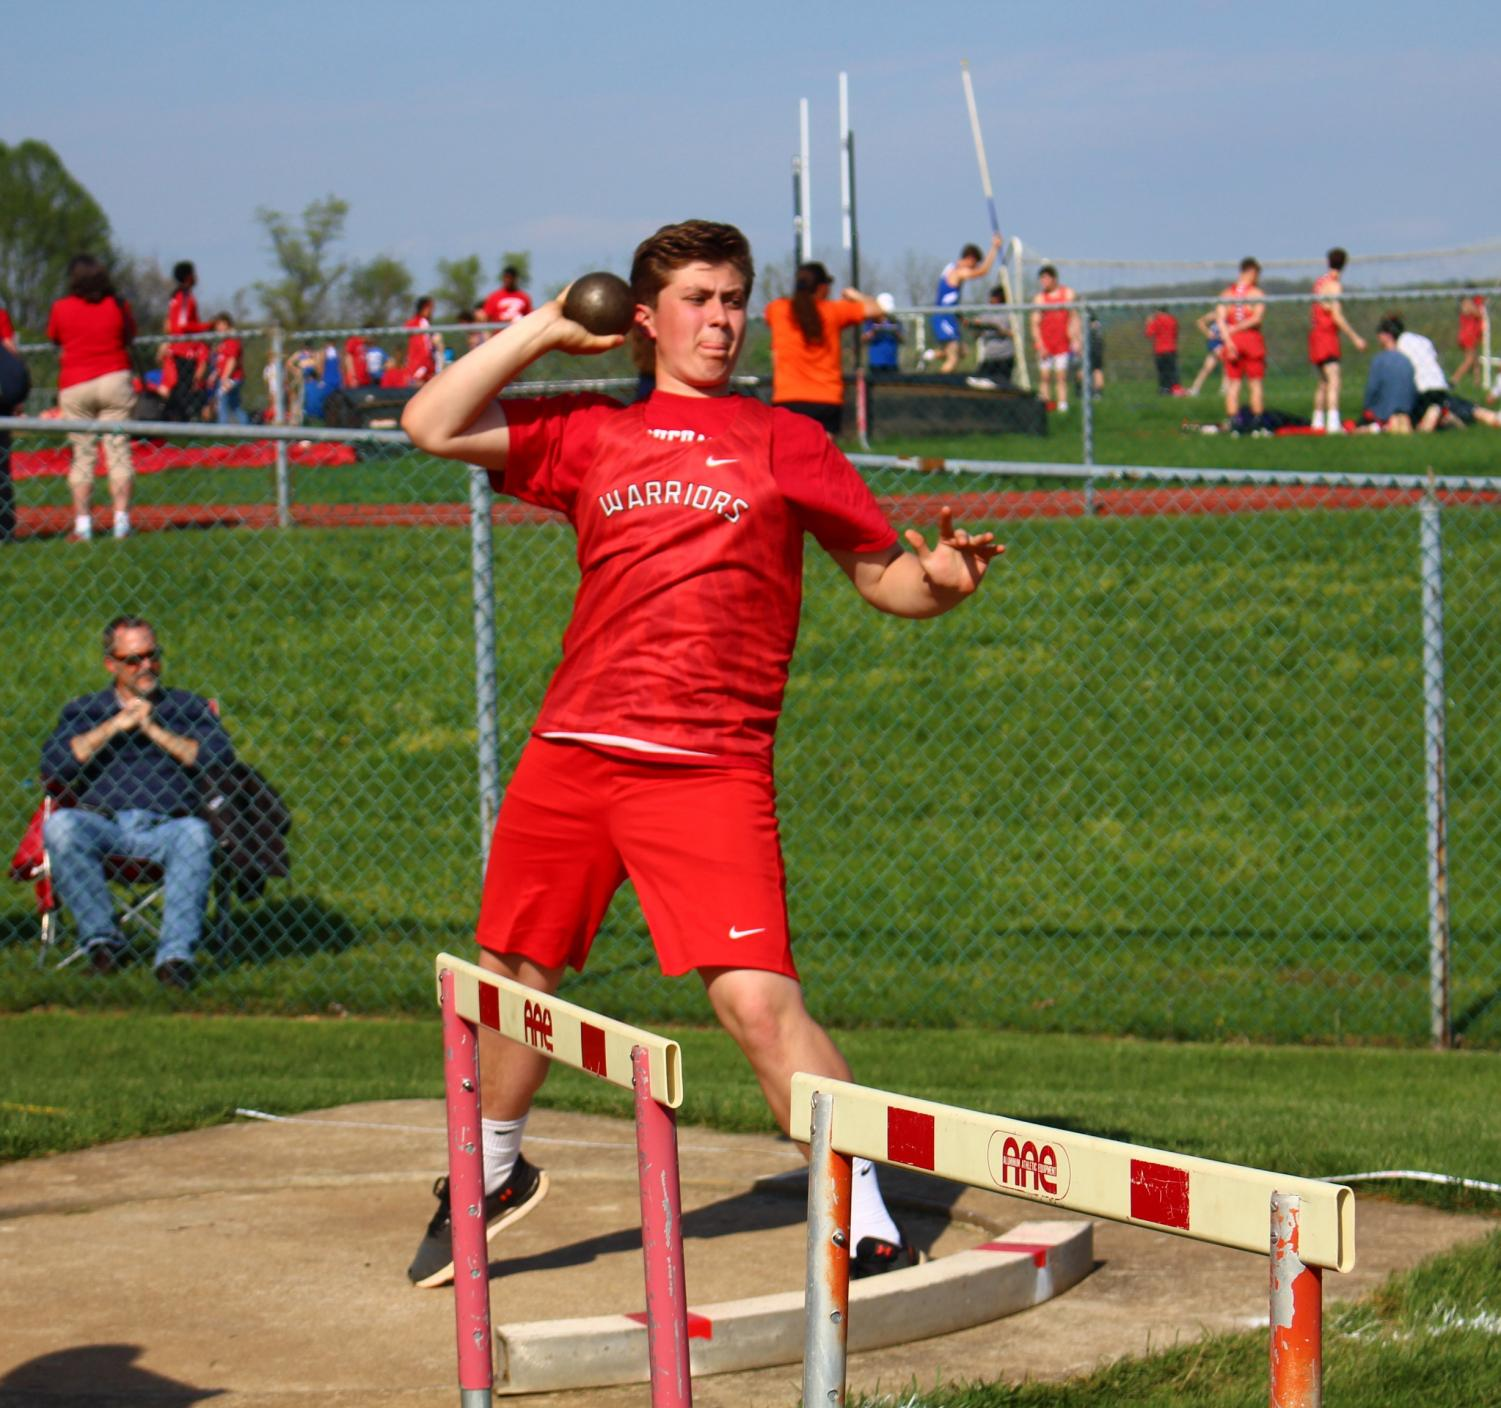 Freshman+Sam+Elsen+throws+the+shot+put+in+the+Kennard-Dale+meet.+%E2%80%9CI+thought+it+went+really+well%2C+I+thought+everyone+was+really+nice.+They+helped+me+improve.%E2%80%9D+said+Elsen+on+how+his+first+year+of+high+school+track+went.+